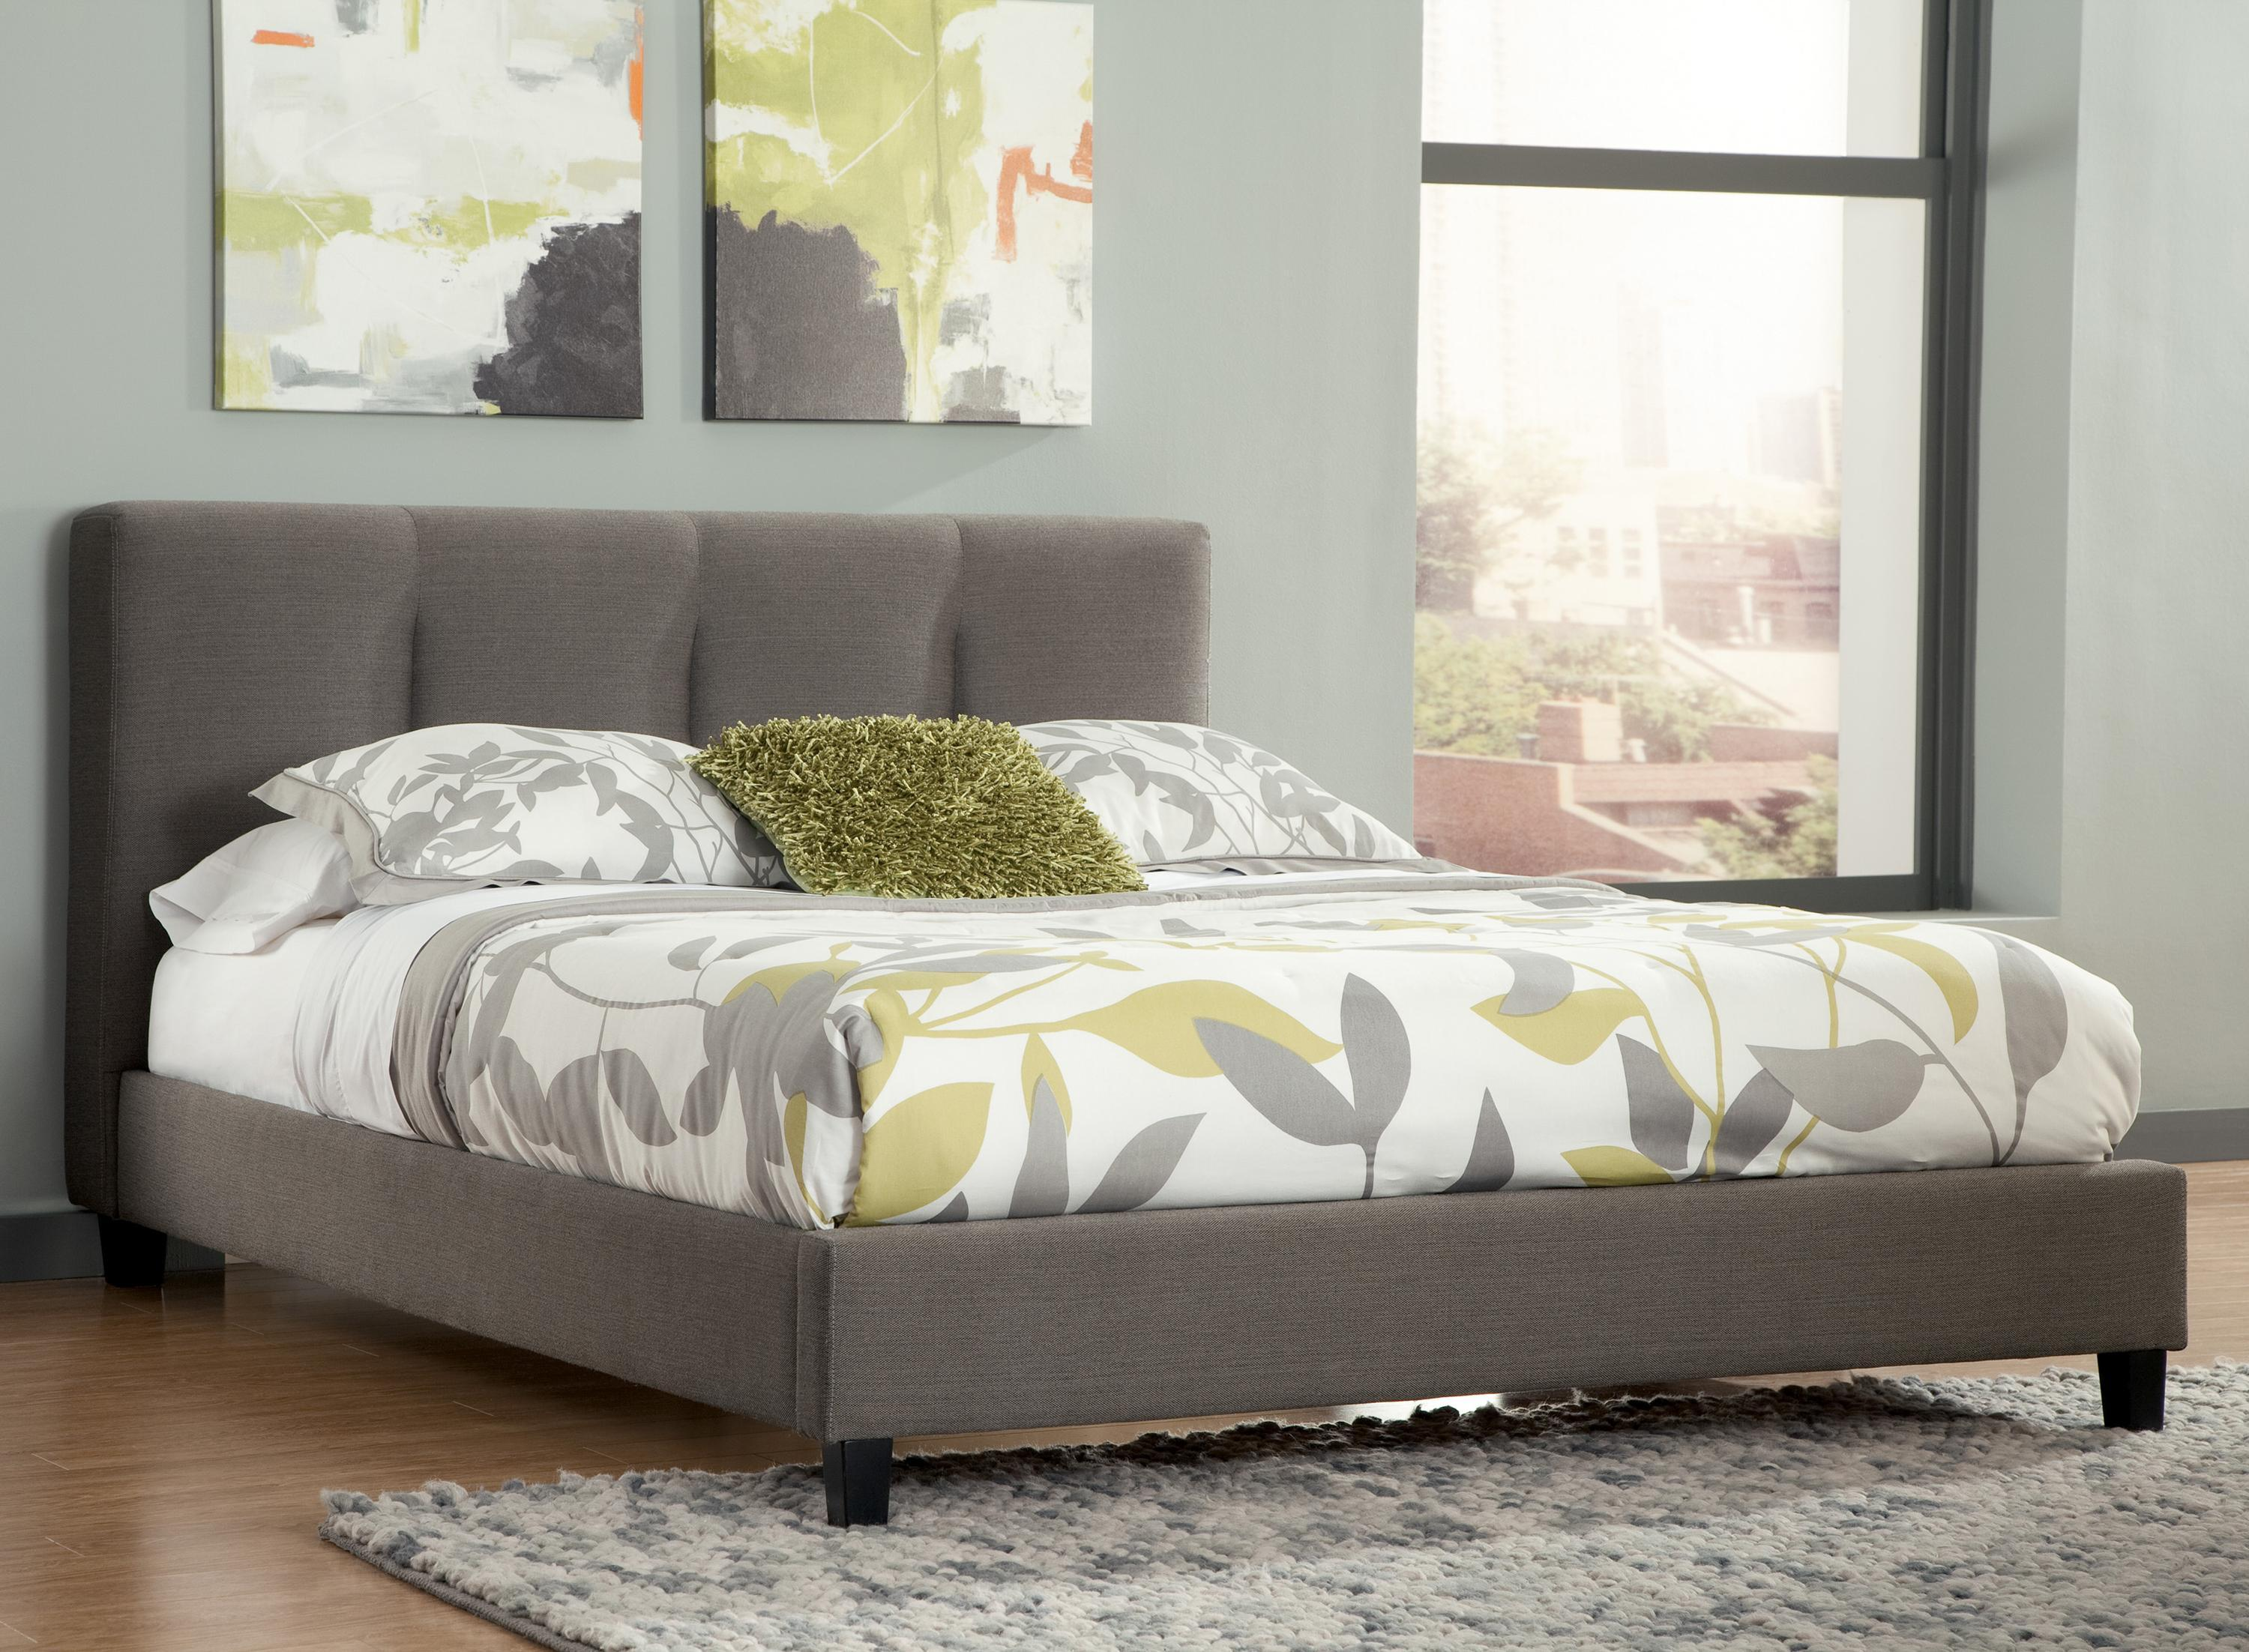 Ashley Furniture King Bed with Upholstered Headboard 3000 x 2204